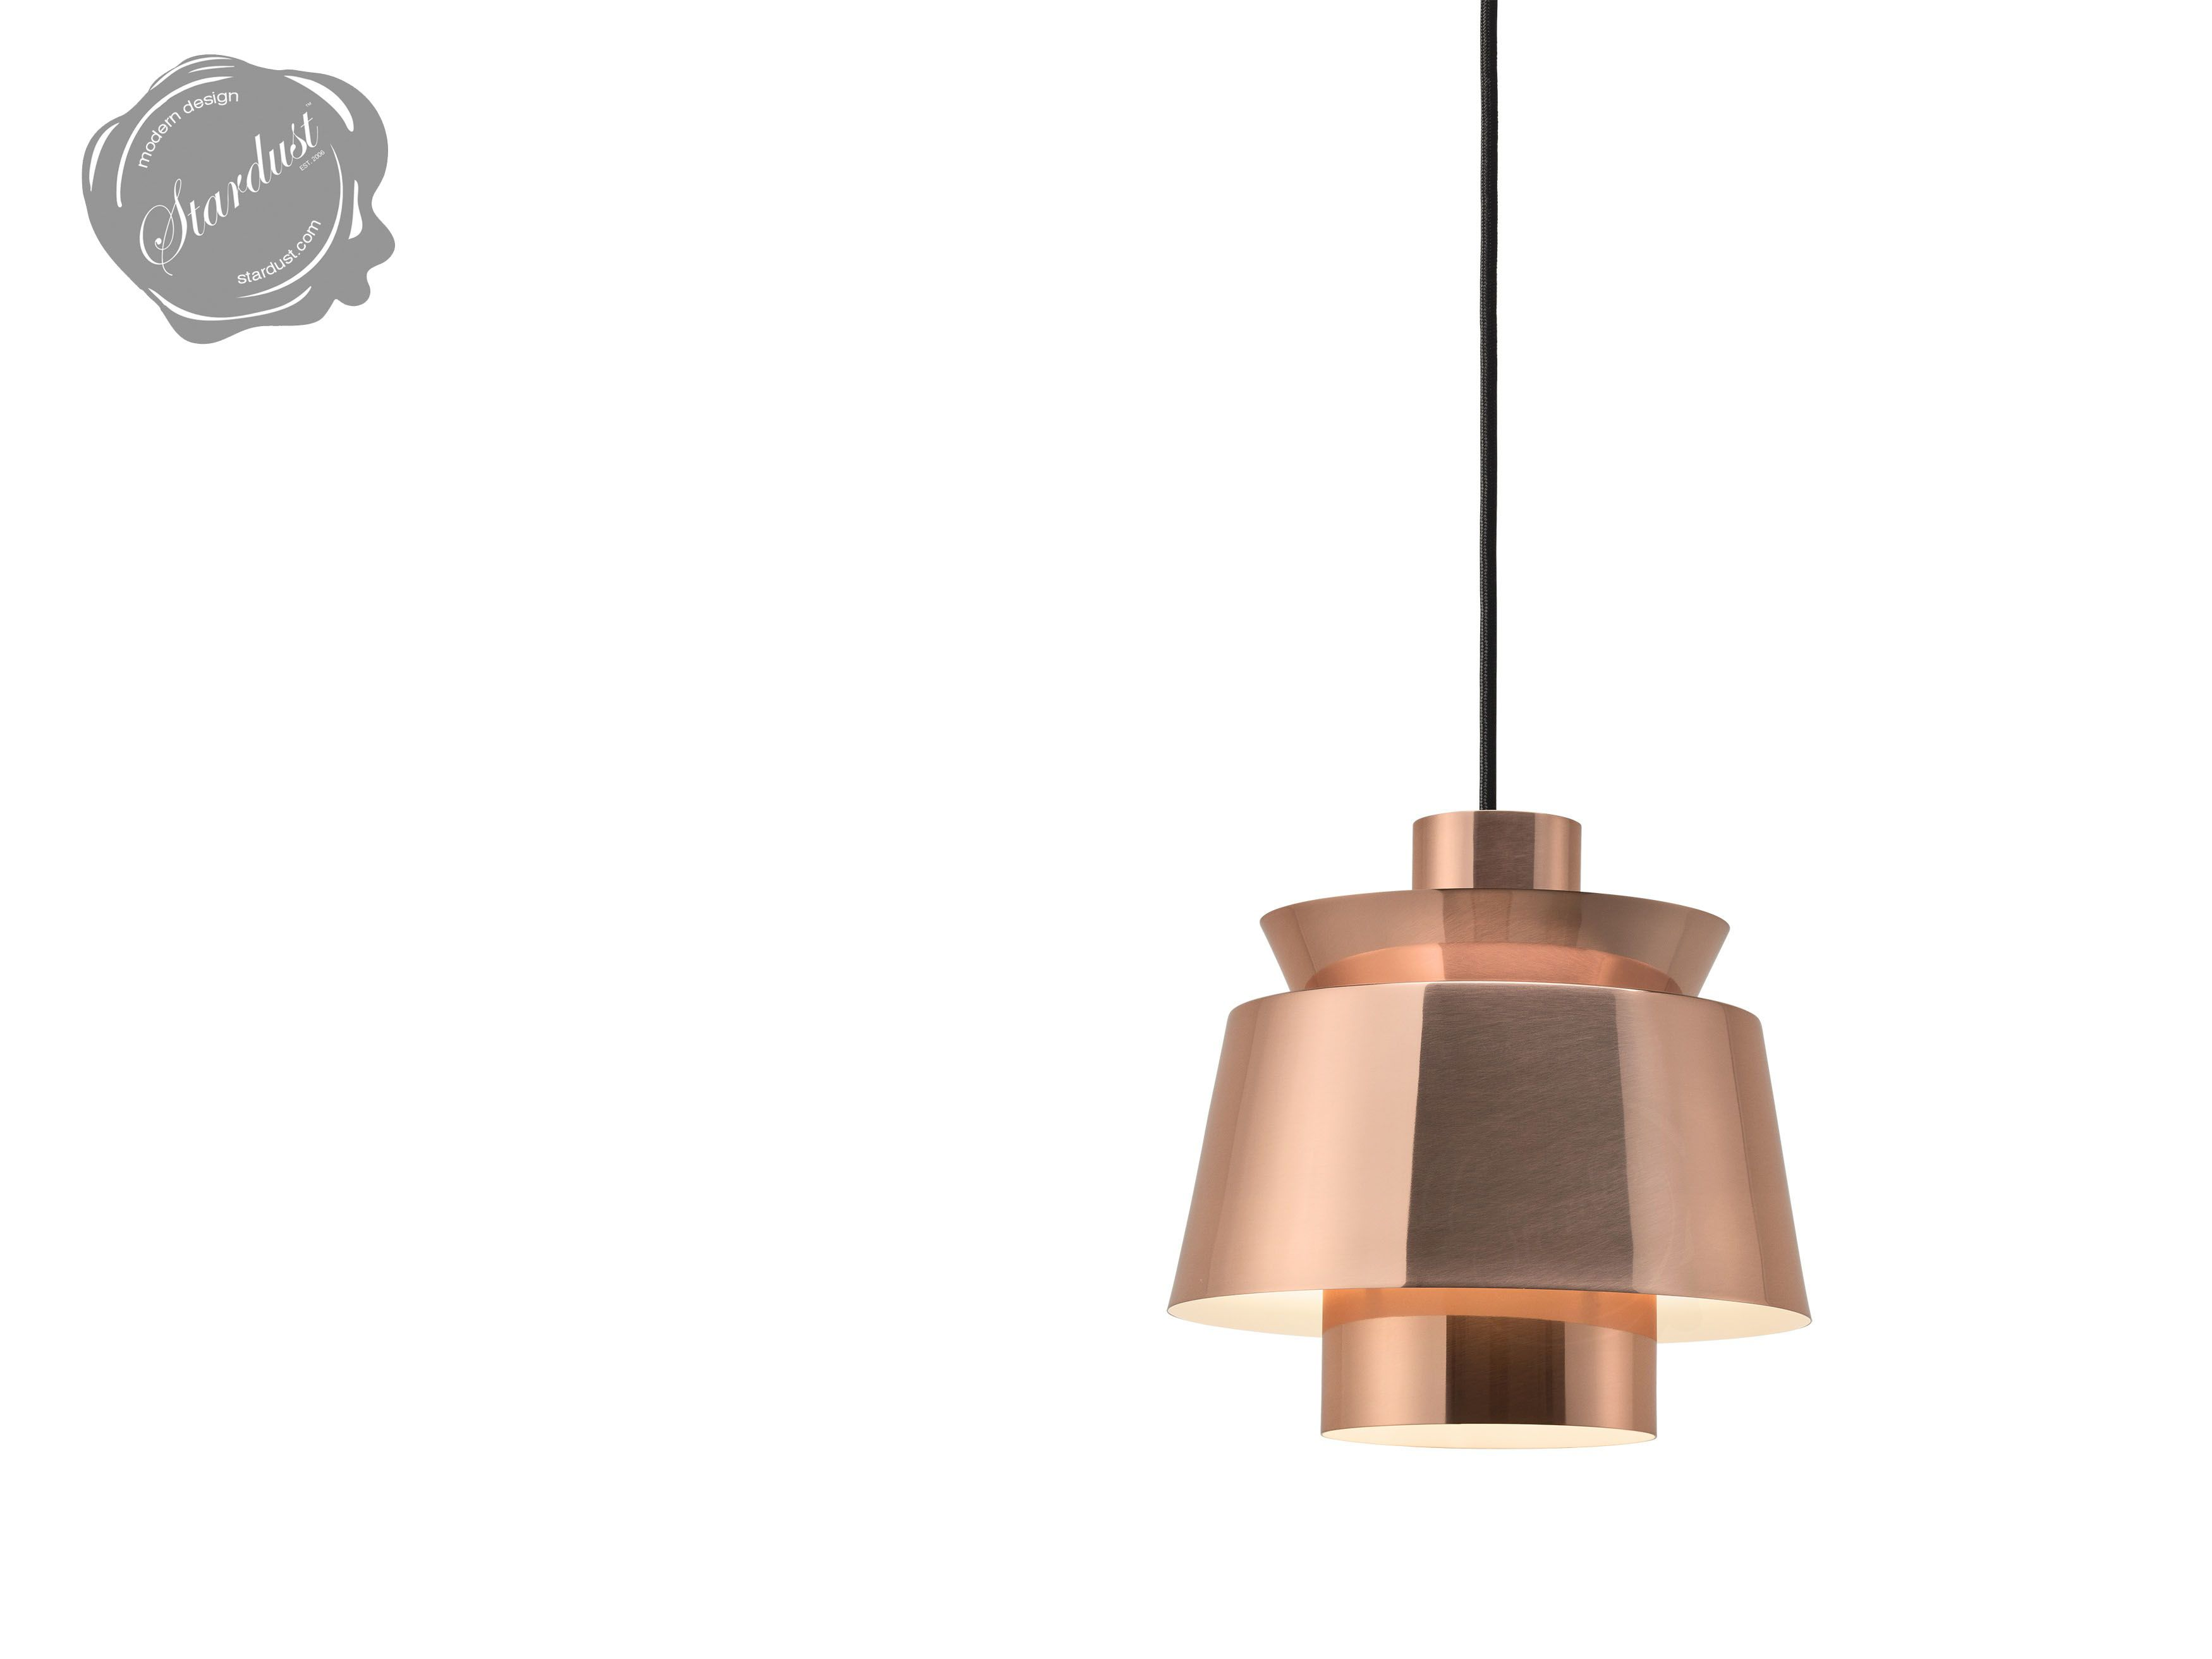 The utzon lamp is a classic danish pendant light with clean the utzon lamp is a classic danish pendant light with clean scandinavian design lines http mozeypictures Images